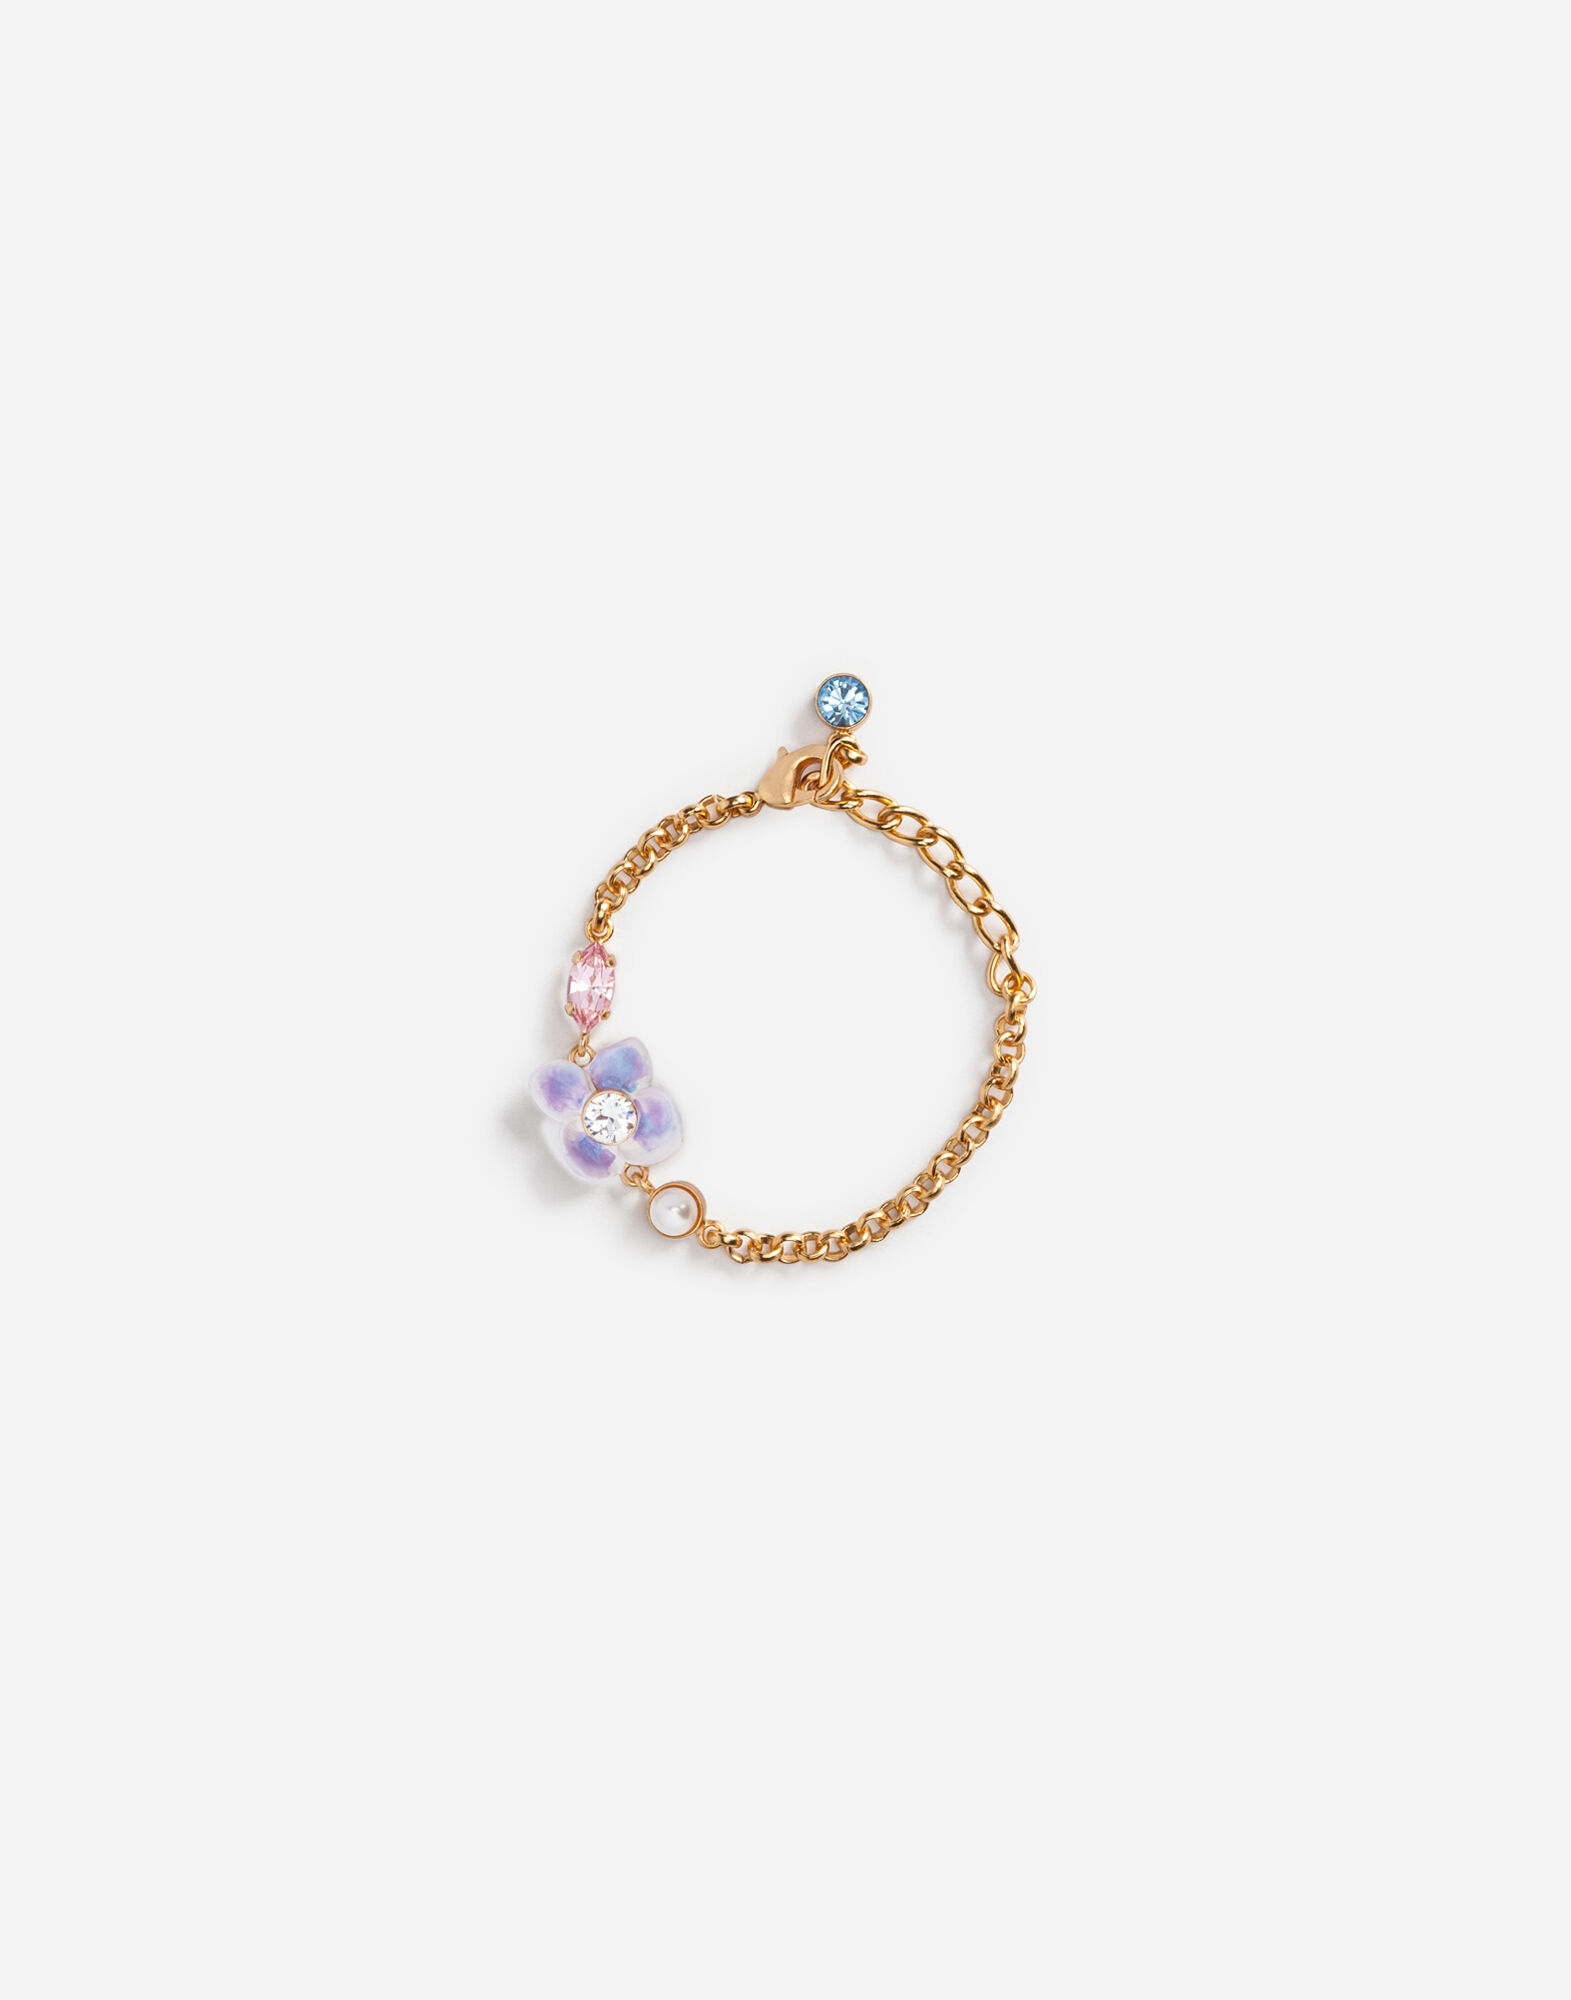 BRACELET WITH DECORATIVE BEJEWELED ACCENTS